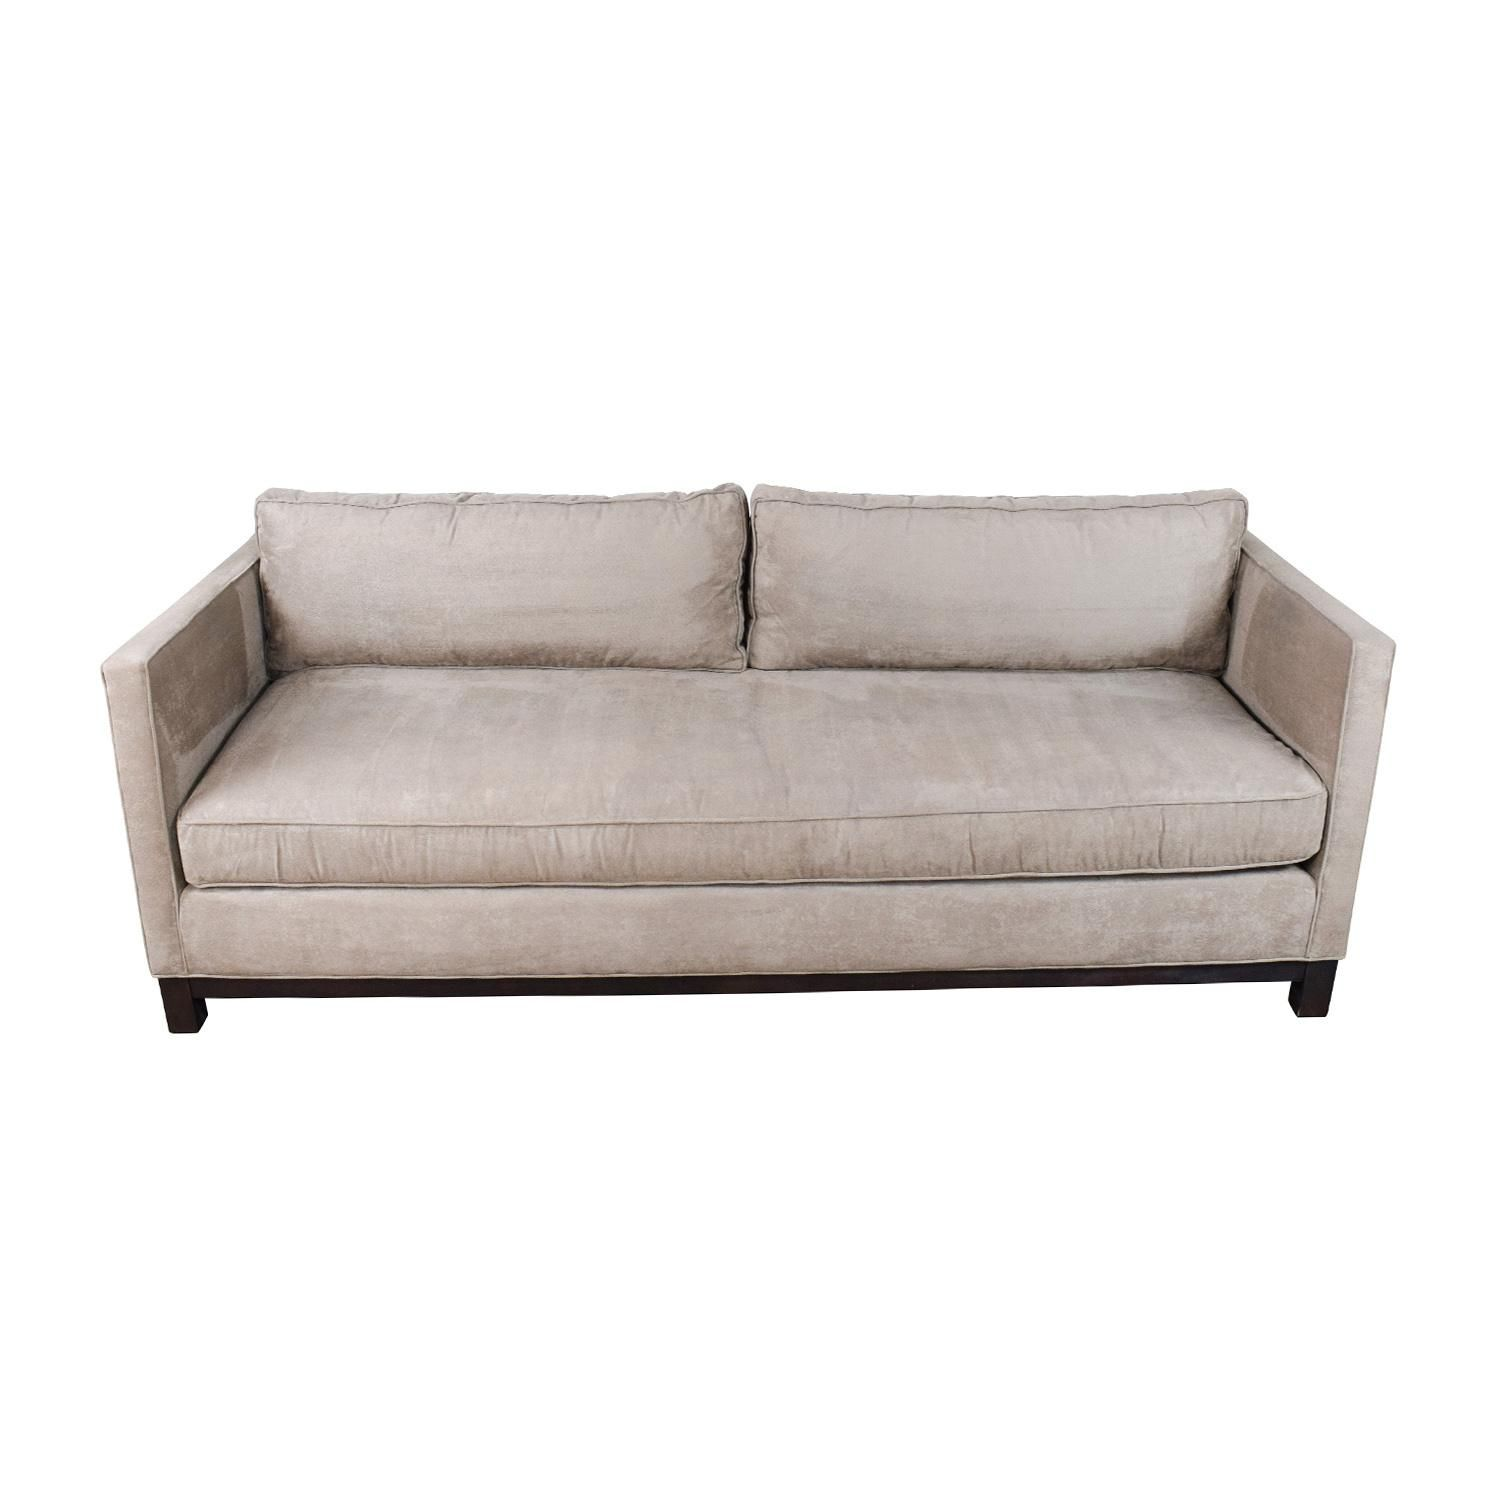 Sofa Hussen Top Mitchell Gold Sofa Hussen Kommode Pinterest Mitchell